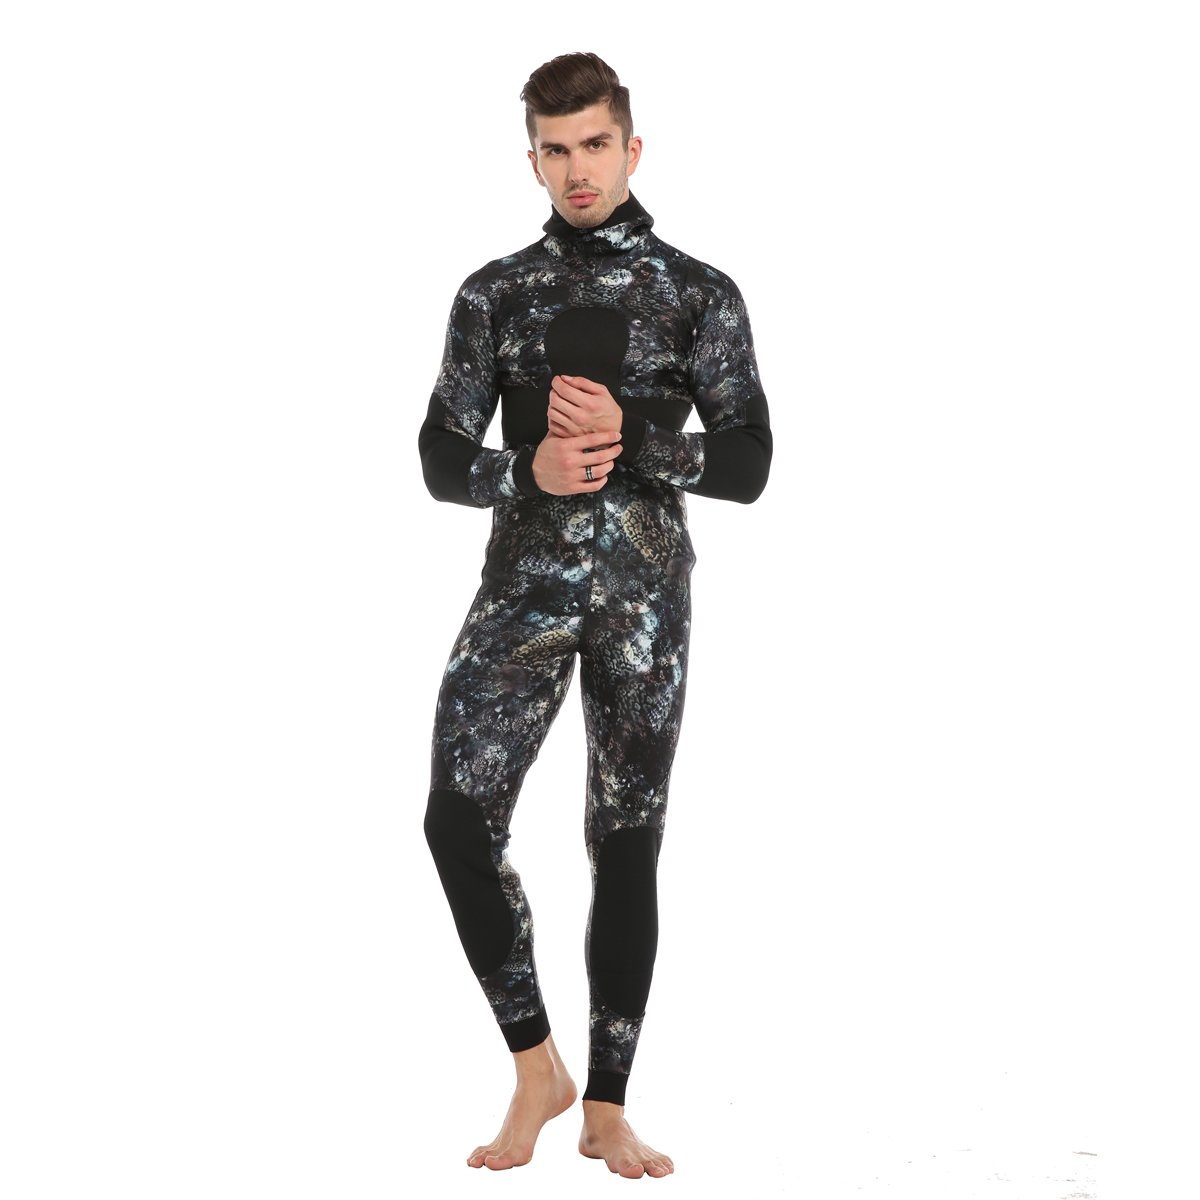 Sportmars 3mm&5mm Coral Camouflage Split Wetsuit Keep Warm Deep Snorkeling Surf Wetsuit Hunting Fish Outfit for Men&Women